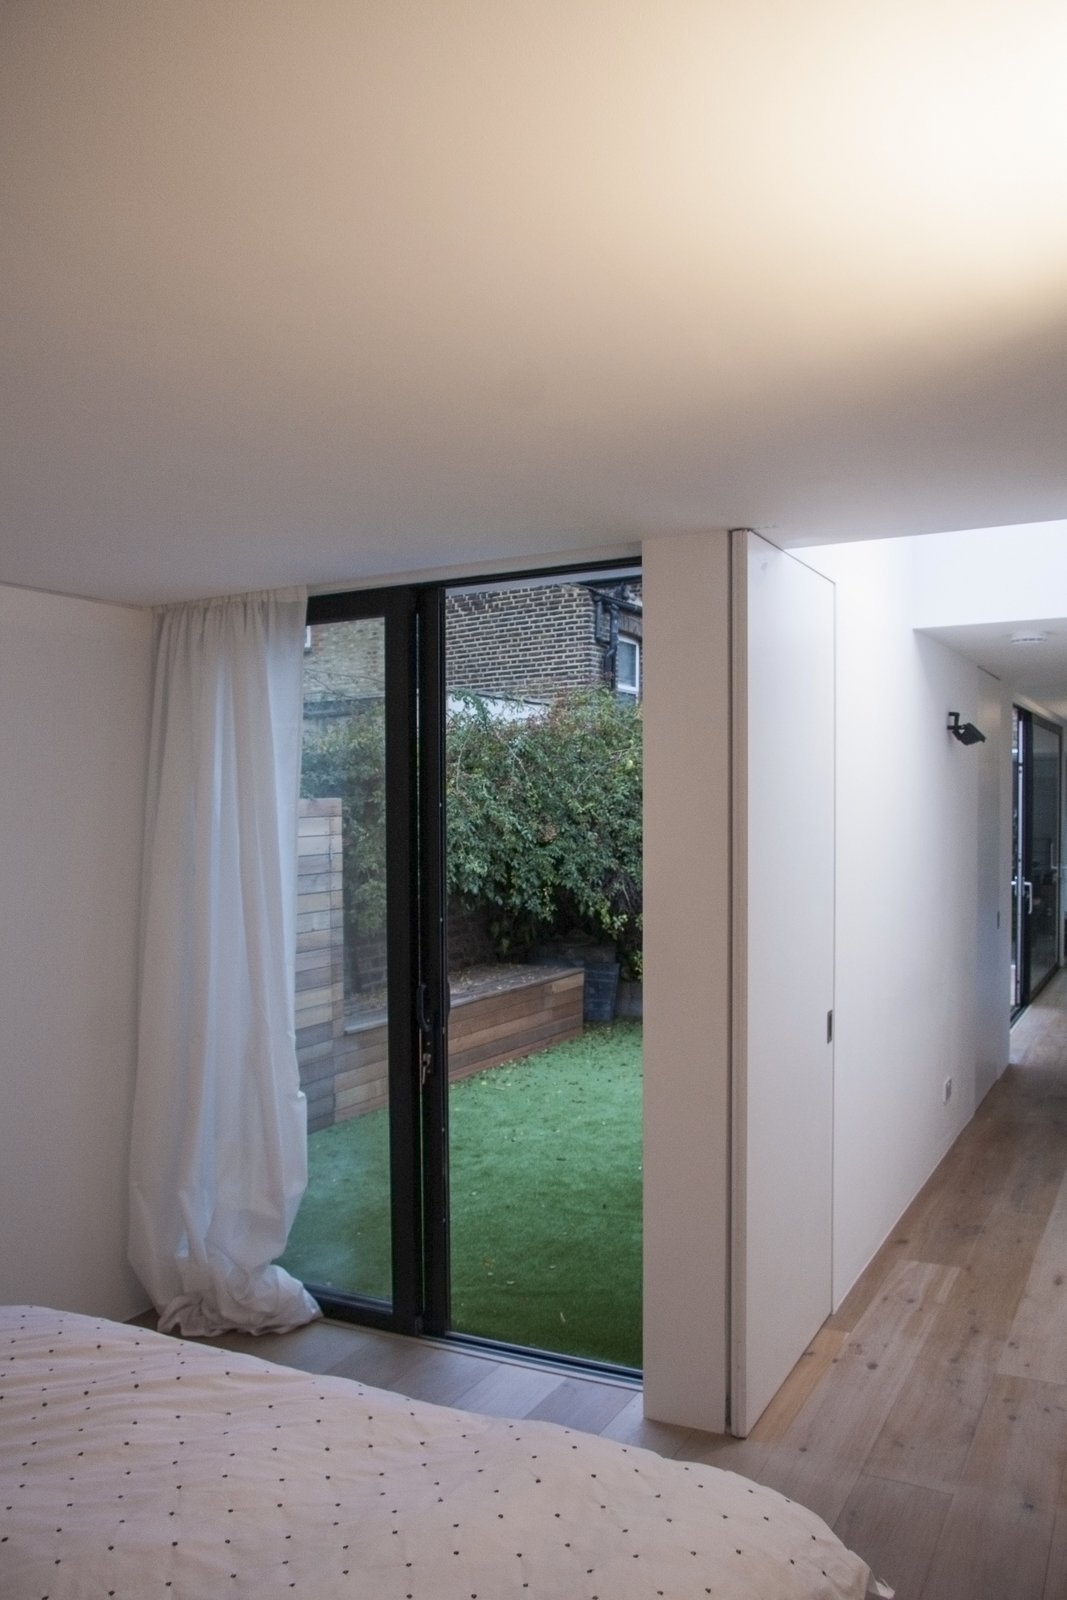 From the master bedroom one can look back down the length of the space through the internal kitchen link or the external courtyard.  Unité de Rénovation